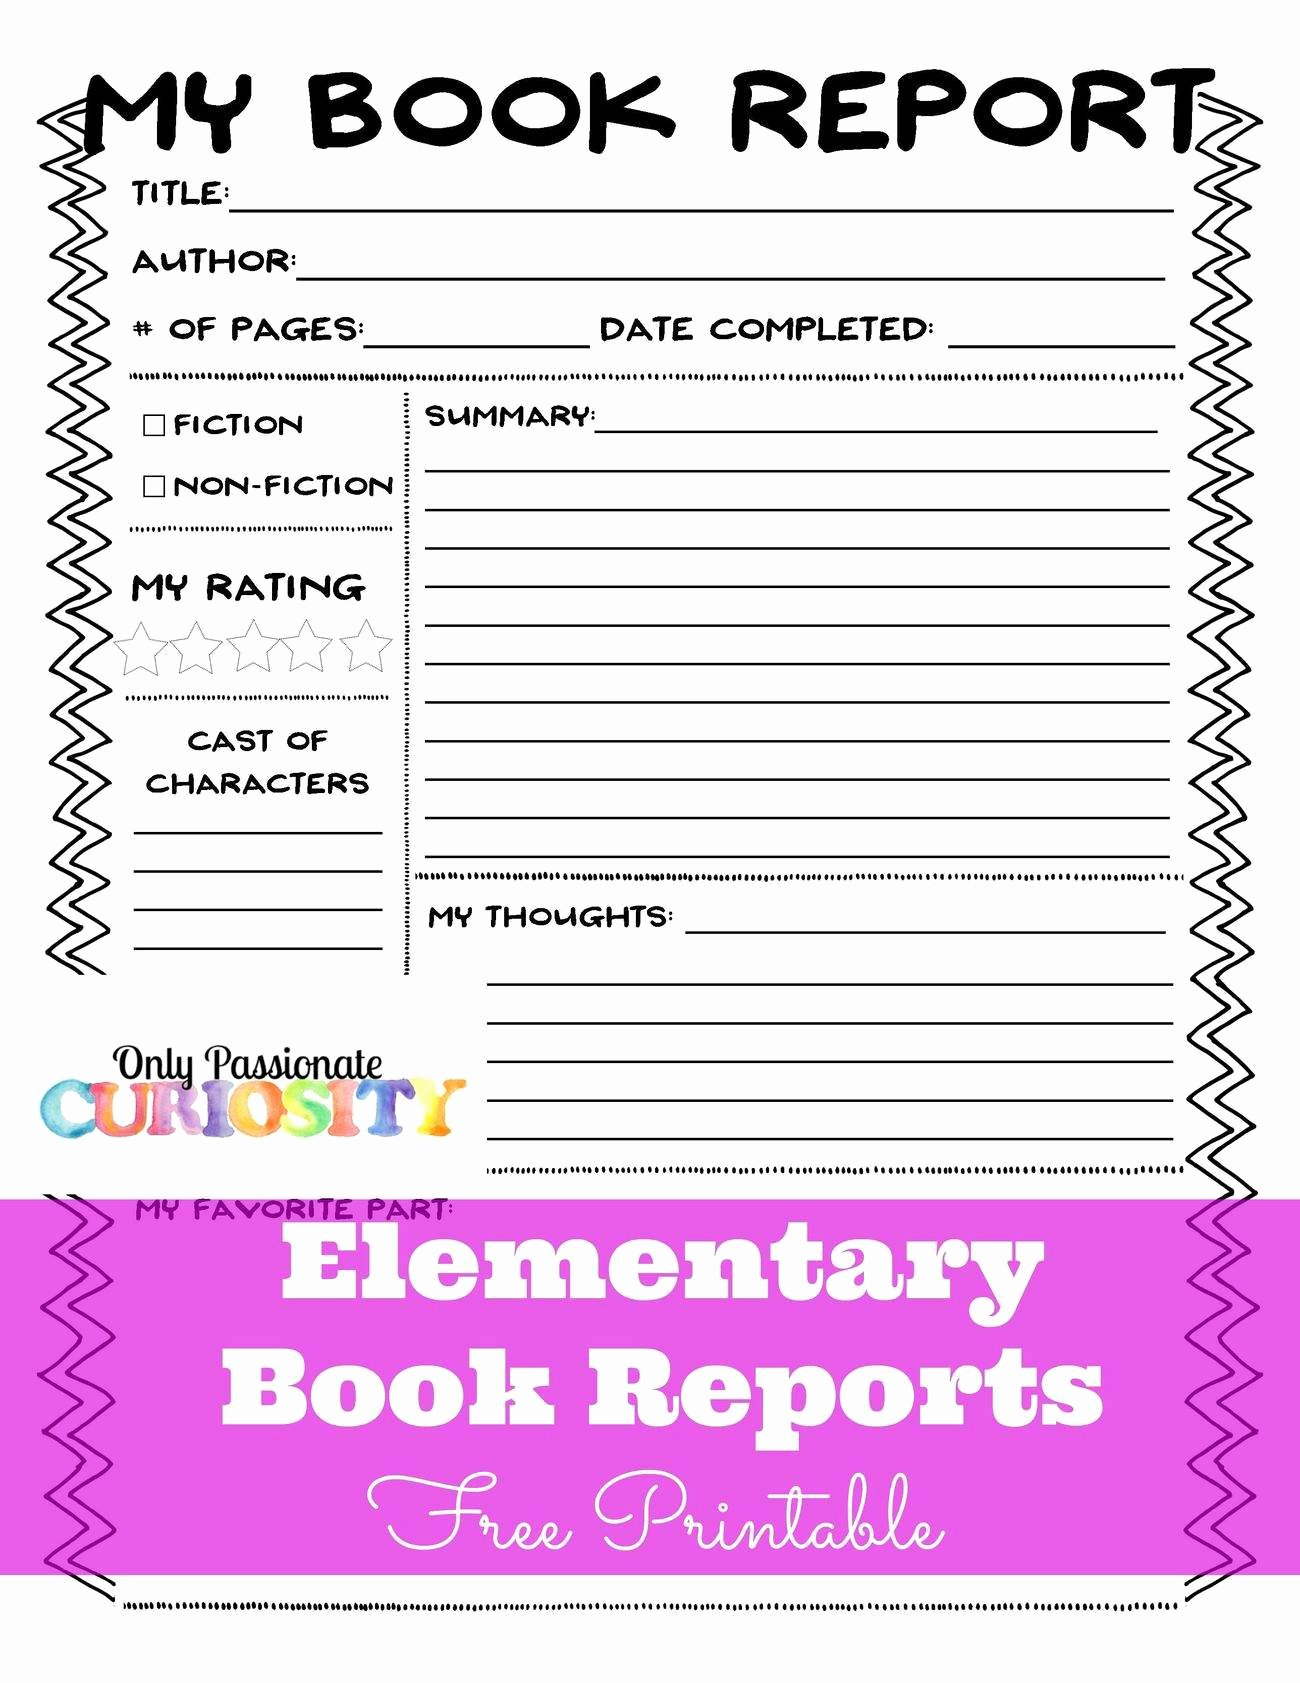 Elementary Book Reports Made Easy – Ly Passionate Curiosity